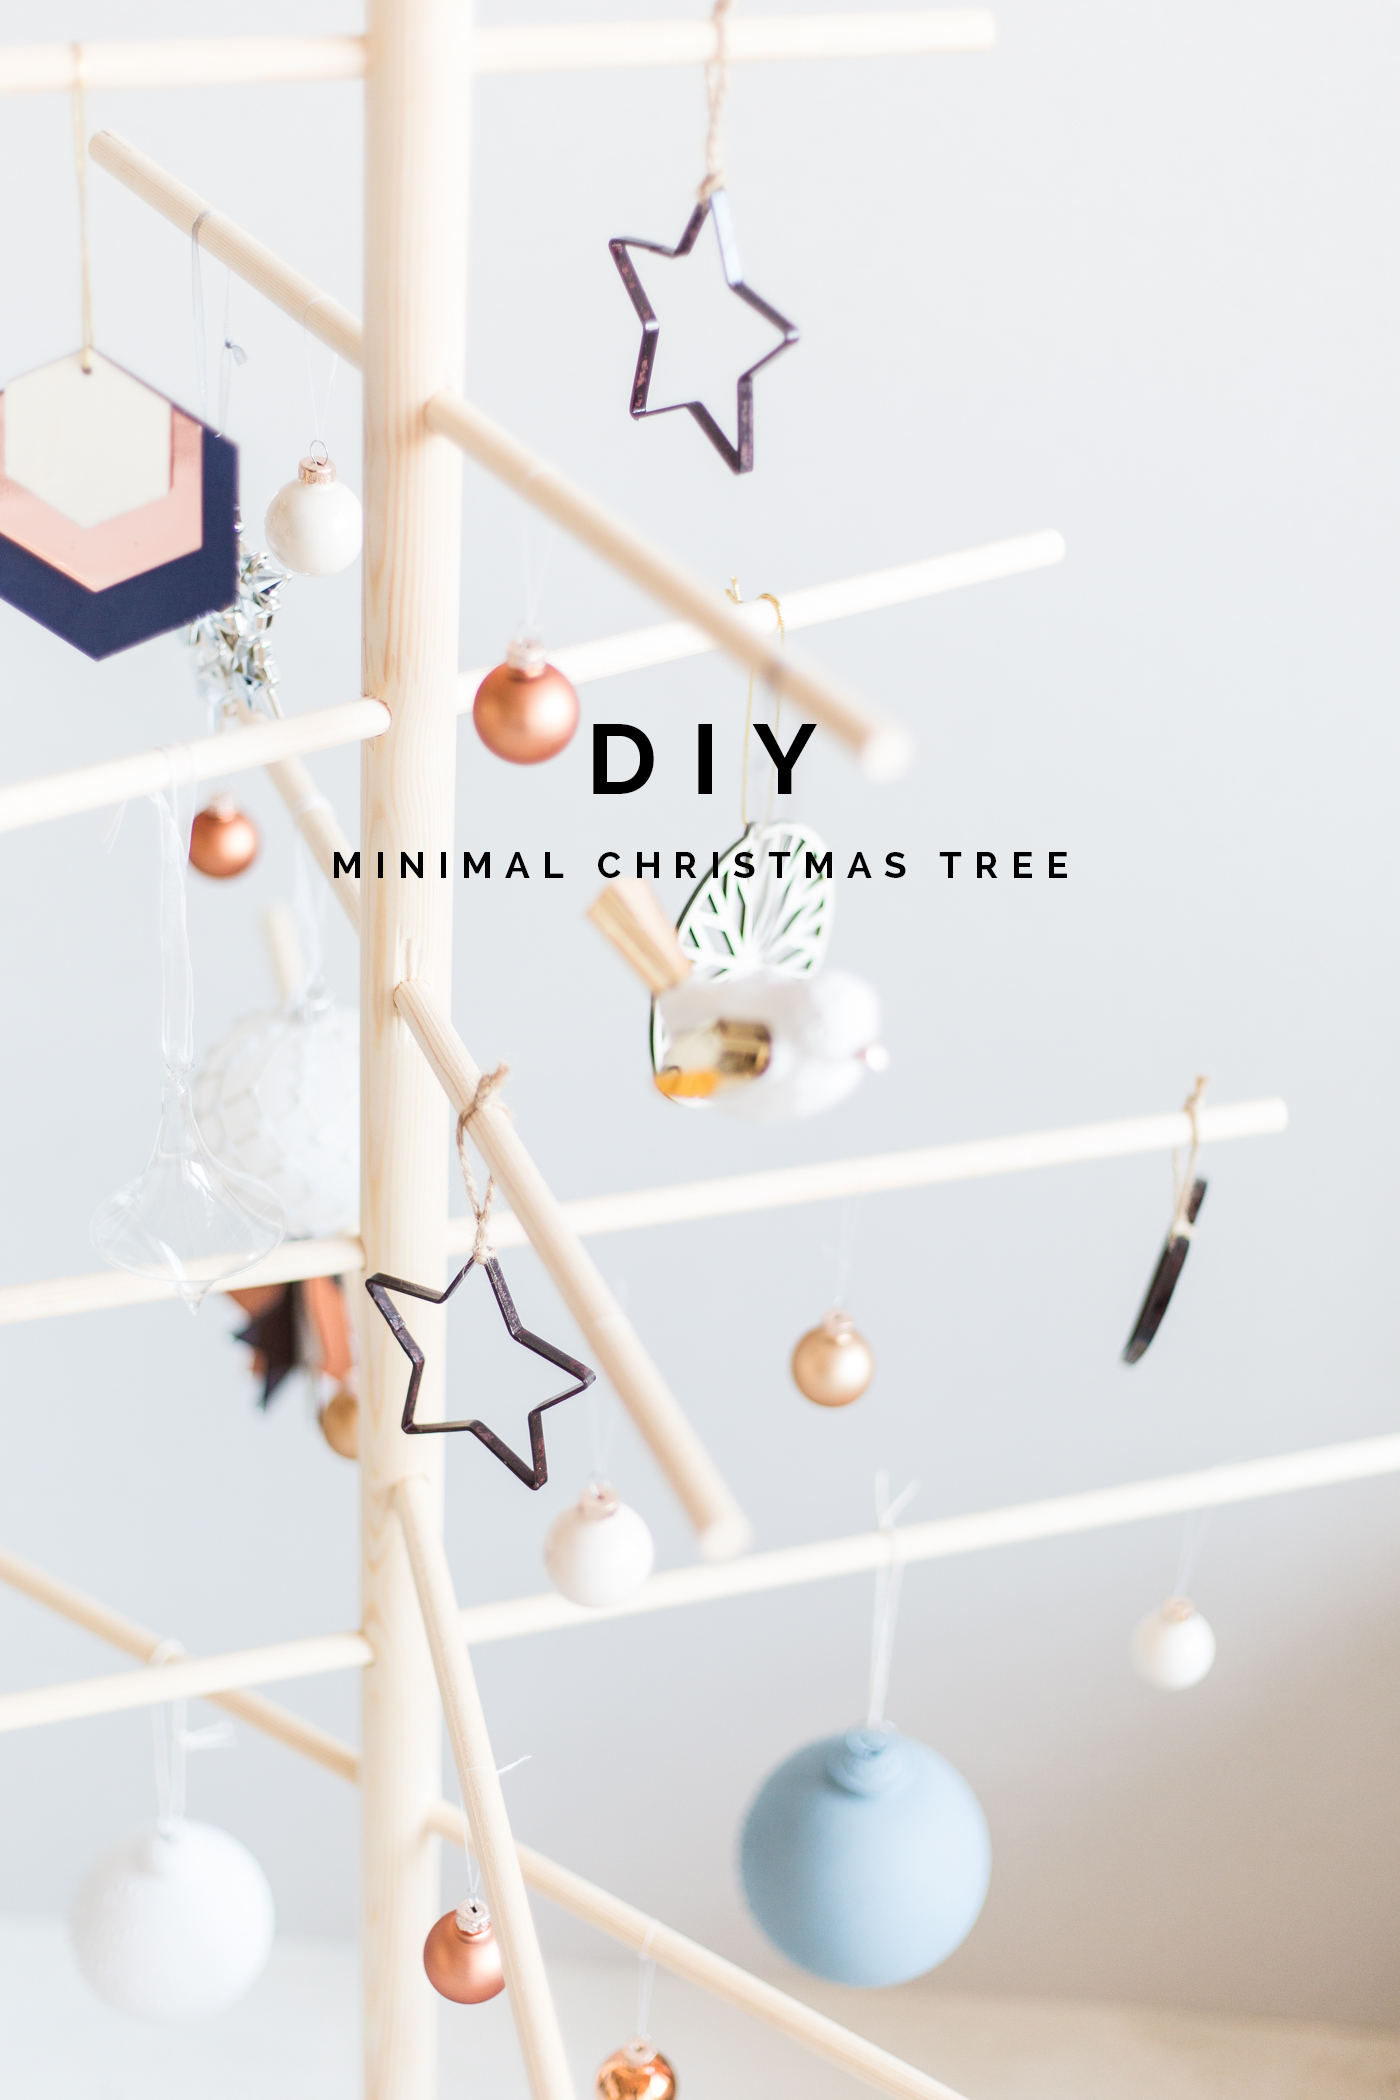 diy-minimalist-wooden-christmas-tree-_-fallfordiy-11